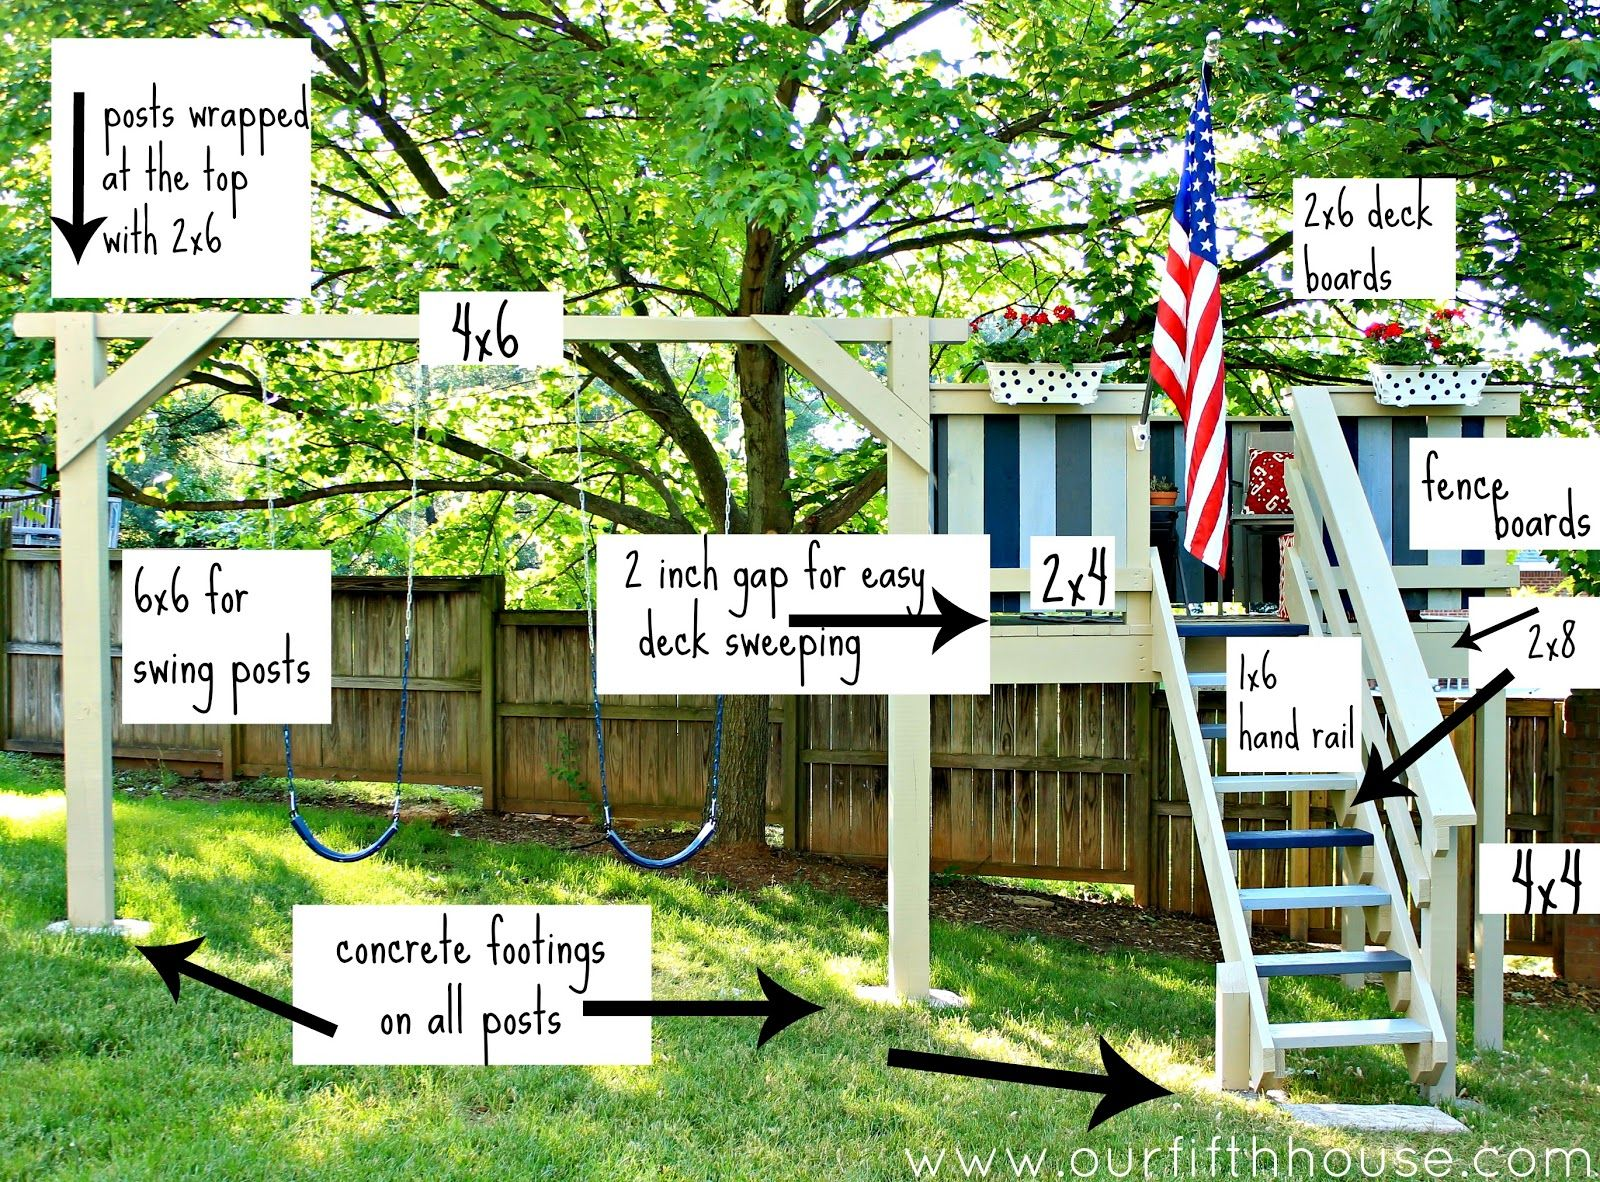 Diy playground diy swing set and playhouse plans kids for Garden playhouse plans